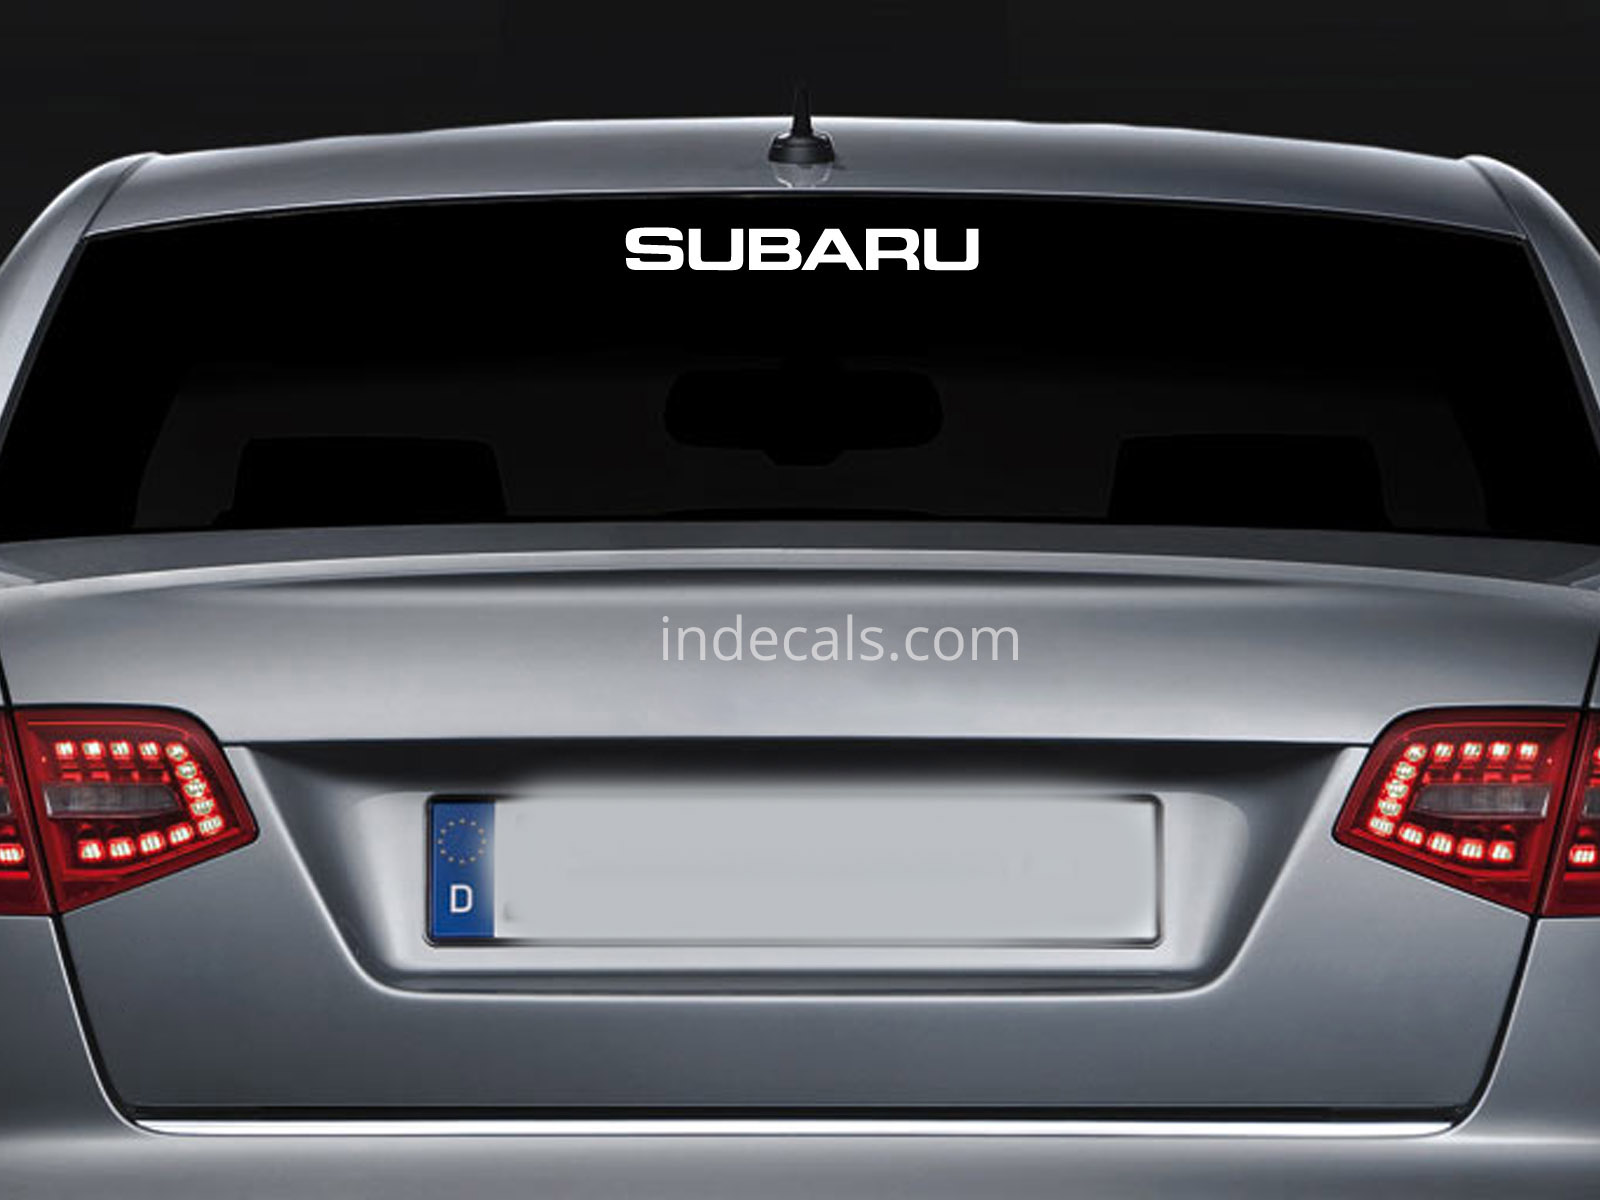 1 x Subaru Sticker for Windshield or Back Window - White